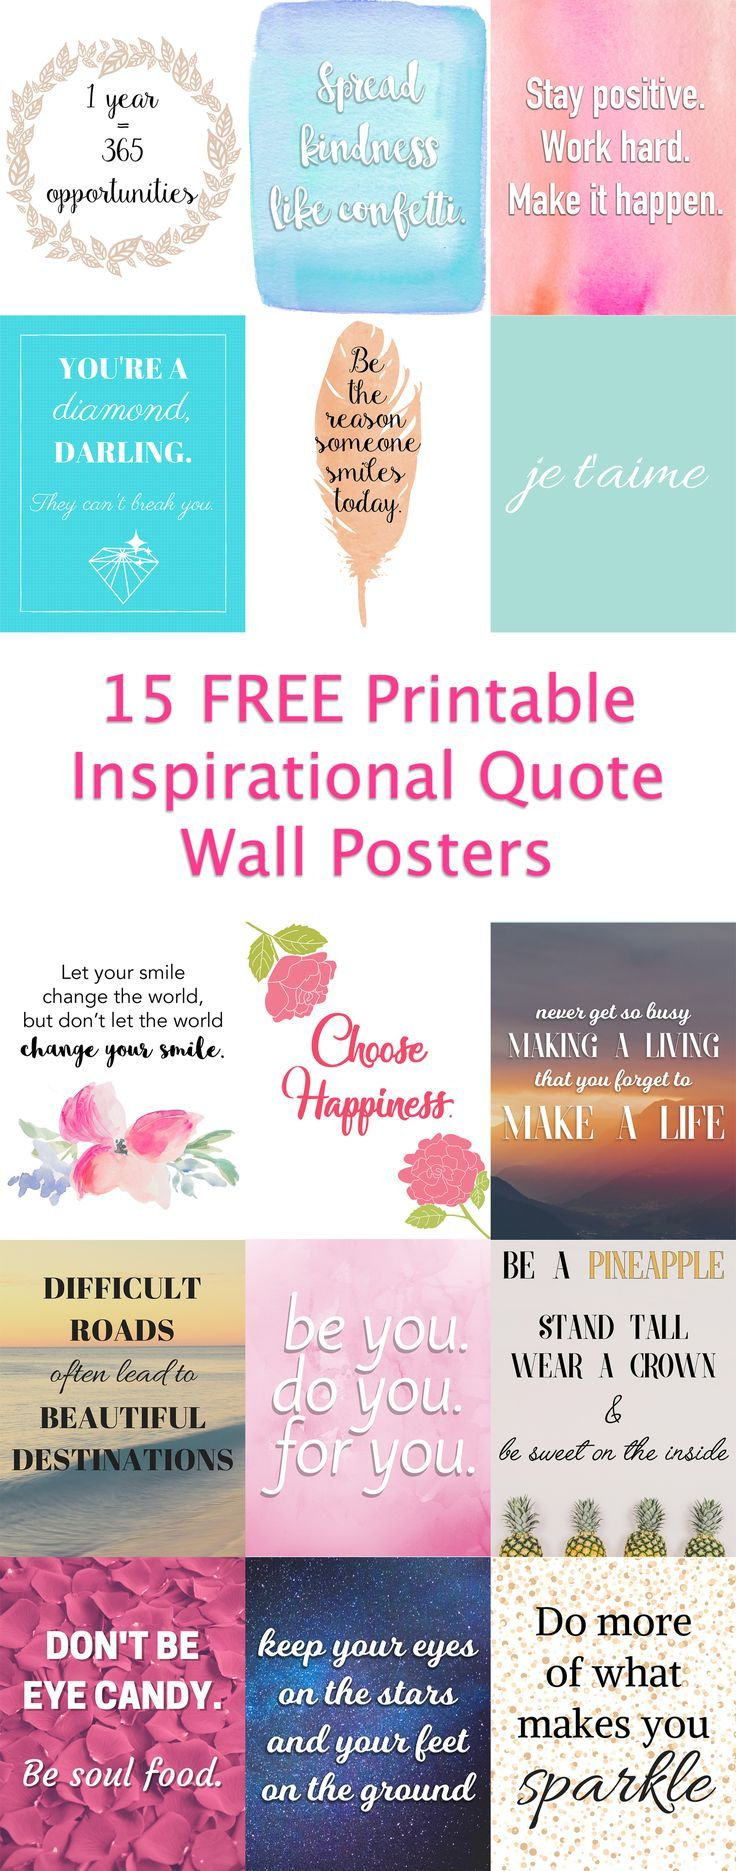 Life Quotes Posters I Created 15 Free Printable Inspirational Quote Posters Just For